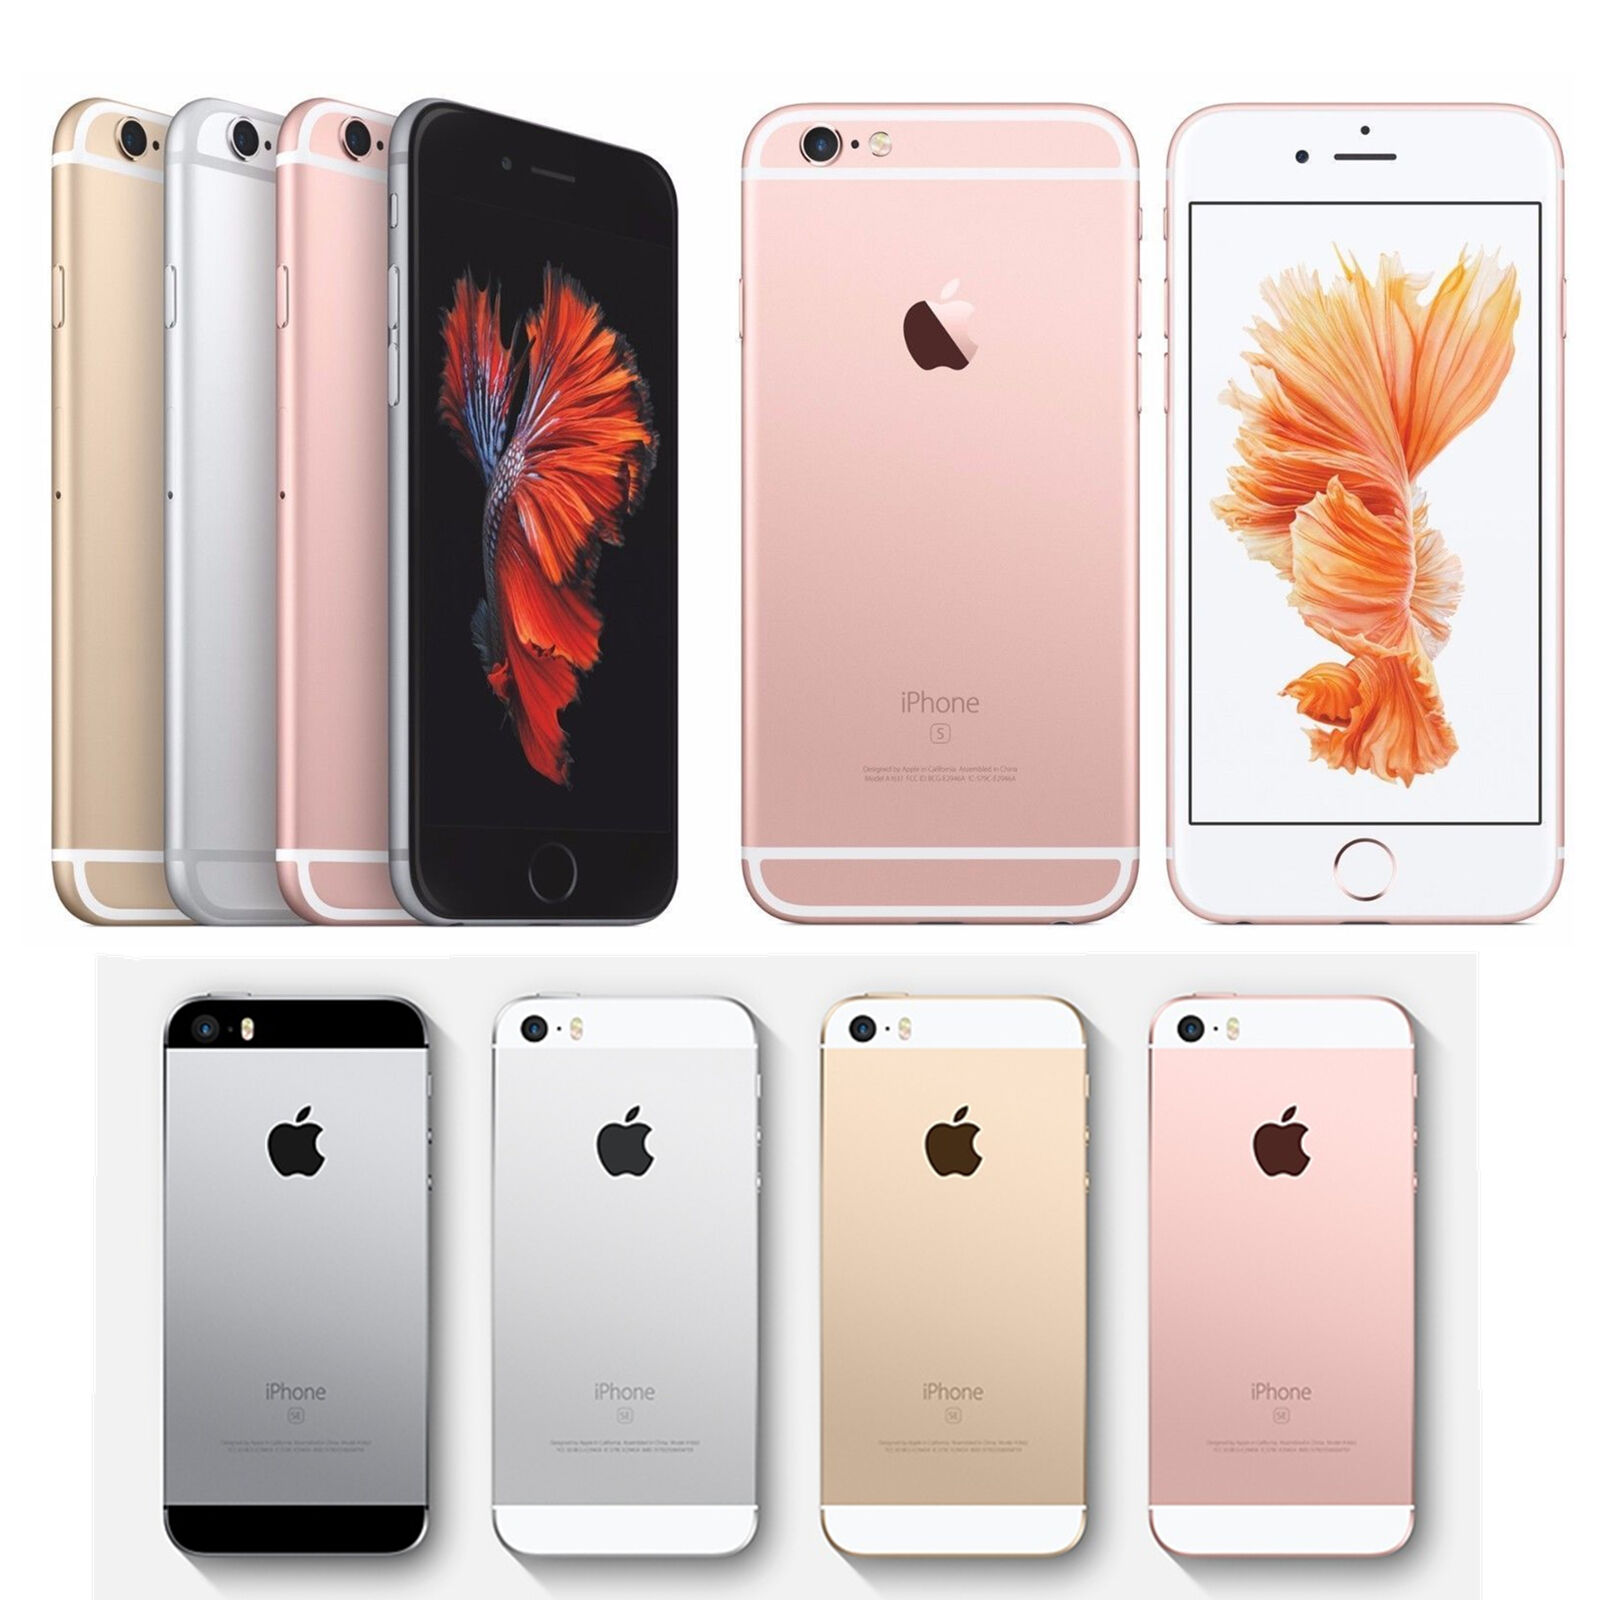 SELLER REFURBISHED APPLE IPHONE 6S PLUS/6 PLUS/6/5S 5C (FACTORY UNLOCKED)GRAY/SILVER/GOLD/ROSE GOLD